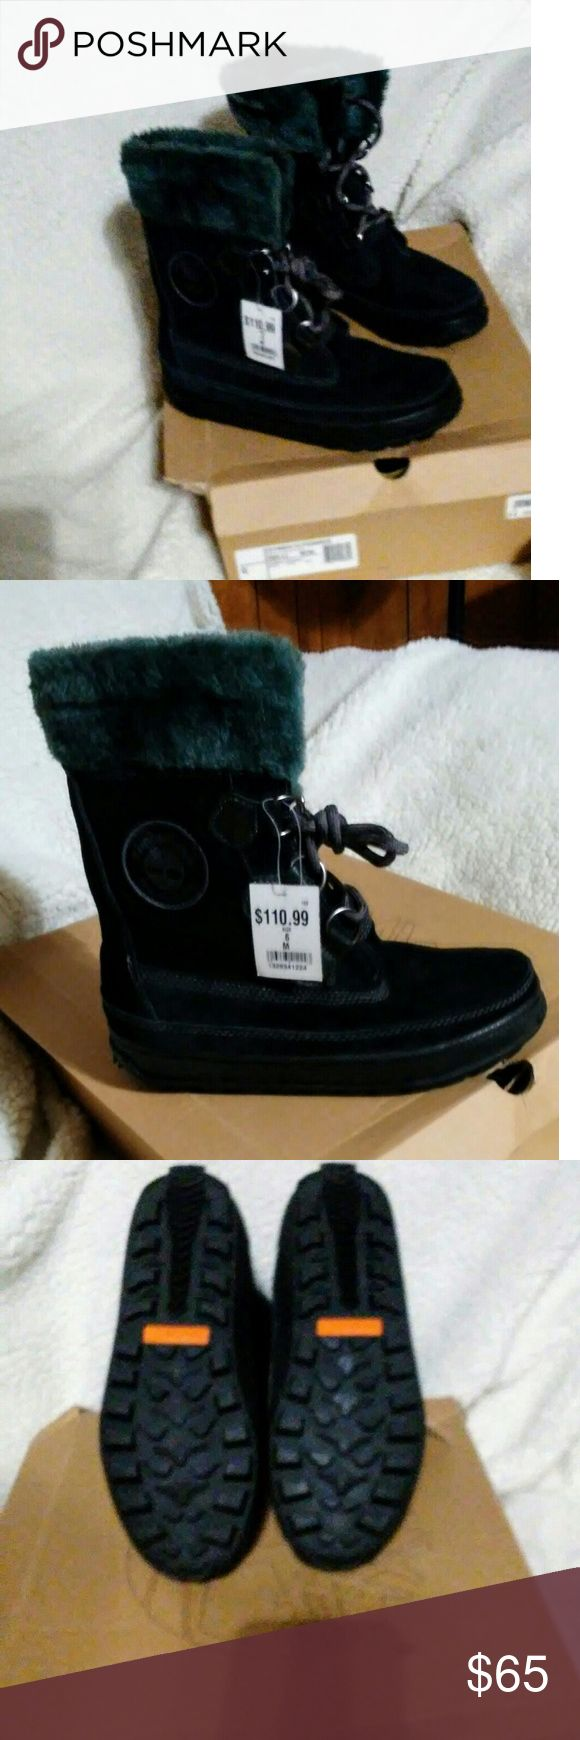 NWT Timberland MUKLUK Lace Black Boots NWT & box - Never Worn  size 6 - runs big - fits like 6 1/2 or 7. Timberland Shoes Winter & Rain Boots